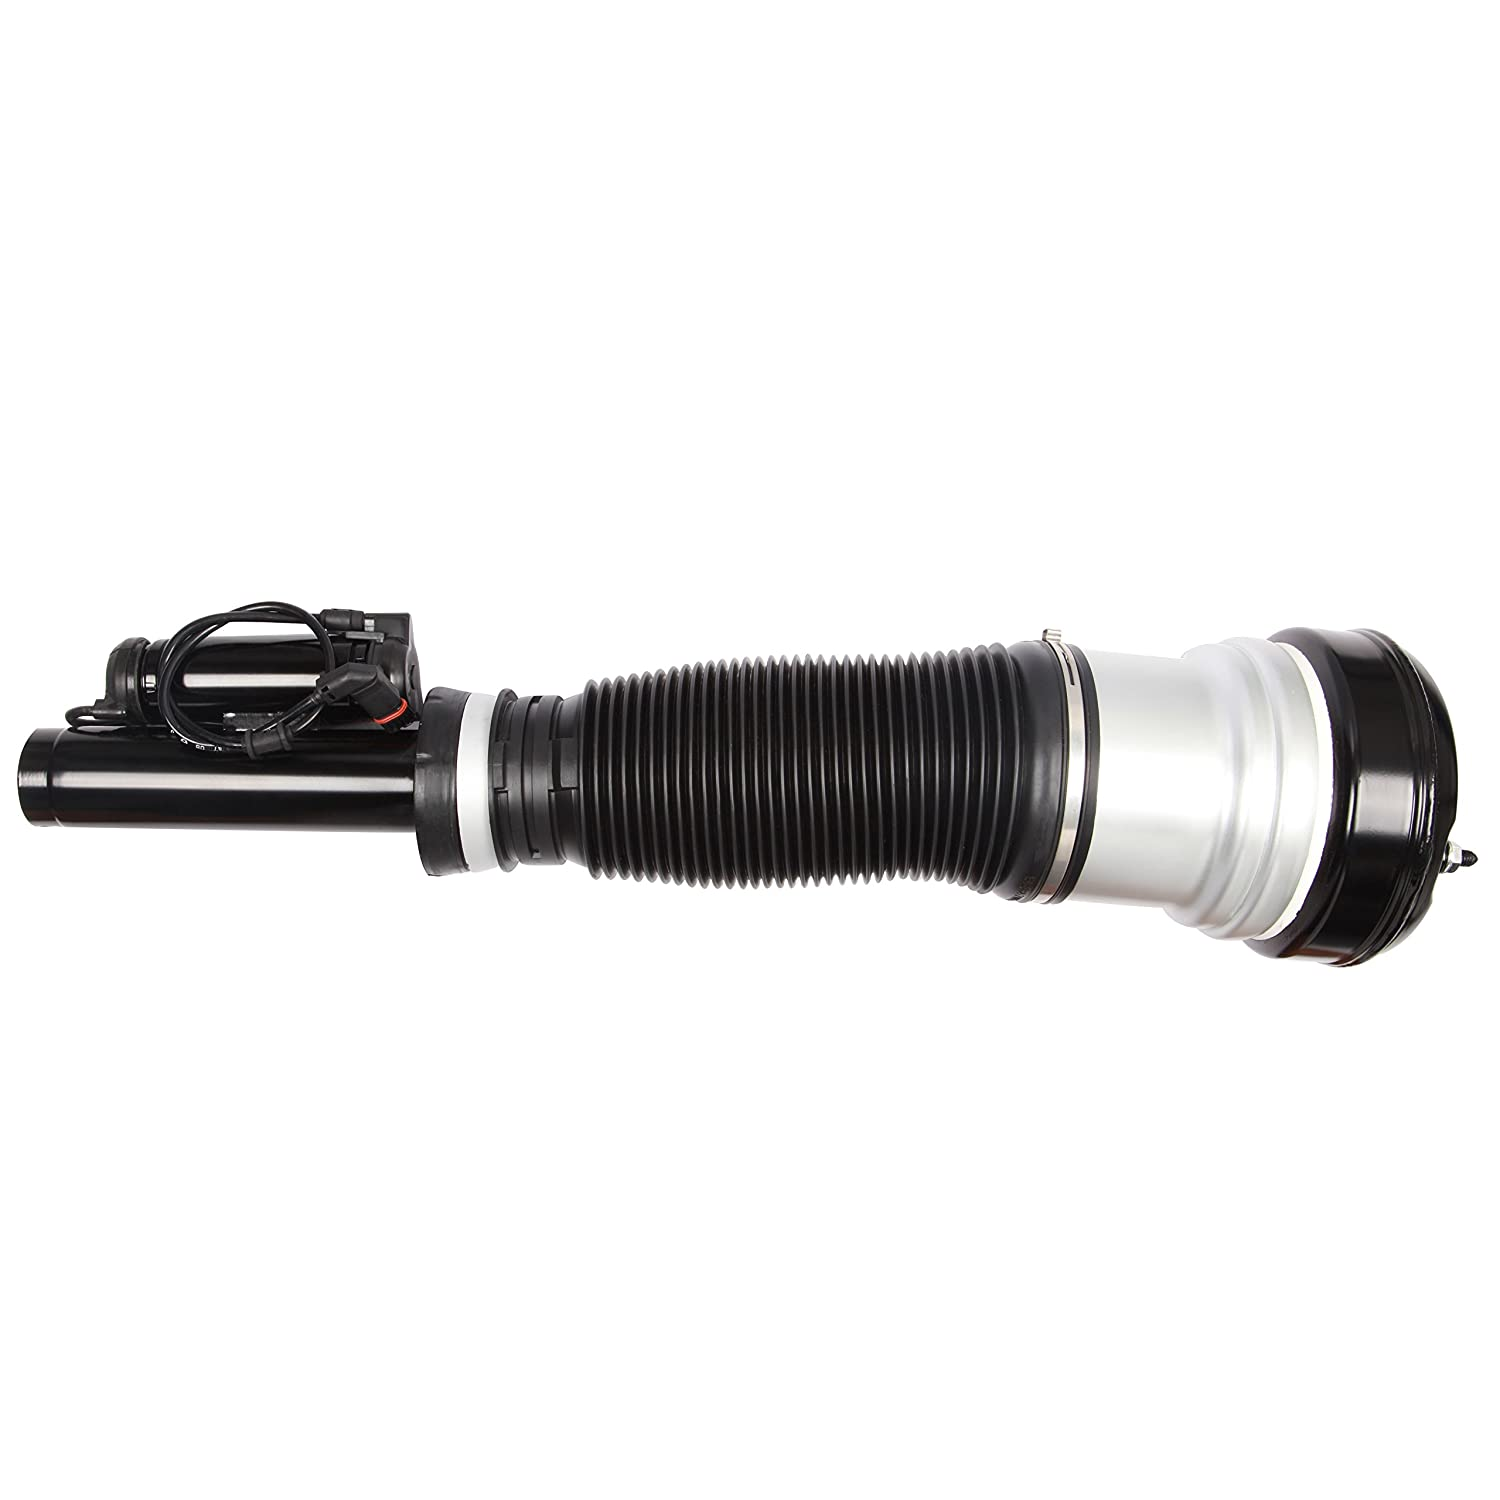 1pcs Front RWD//2WD Air Shock Airmatic Assembly Fit for 06 Mercedes-Benz S350,00-06 Mercedes-Benz S430//S500//S600,01-06 Mercedes-Benz S55 AMG,05-06 Mercedes-Benz S65 AMG OCPTY Air Suspension Struts